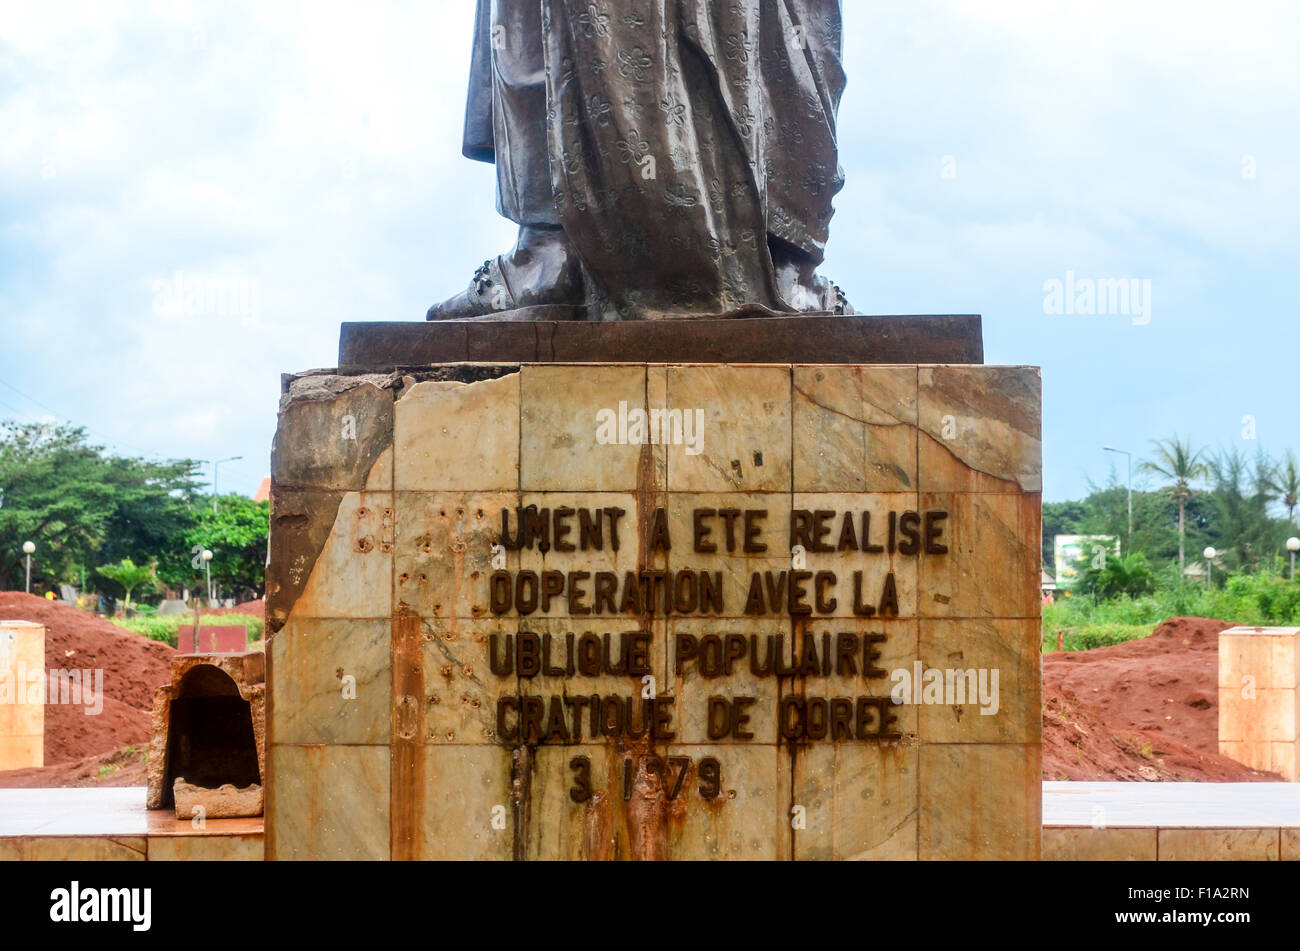 Statue from North Korea in Abomey, Benin, Africa - Stock Image